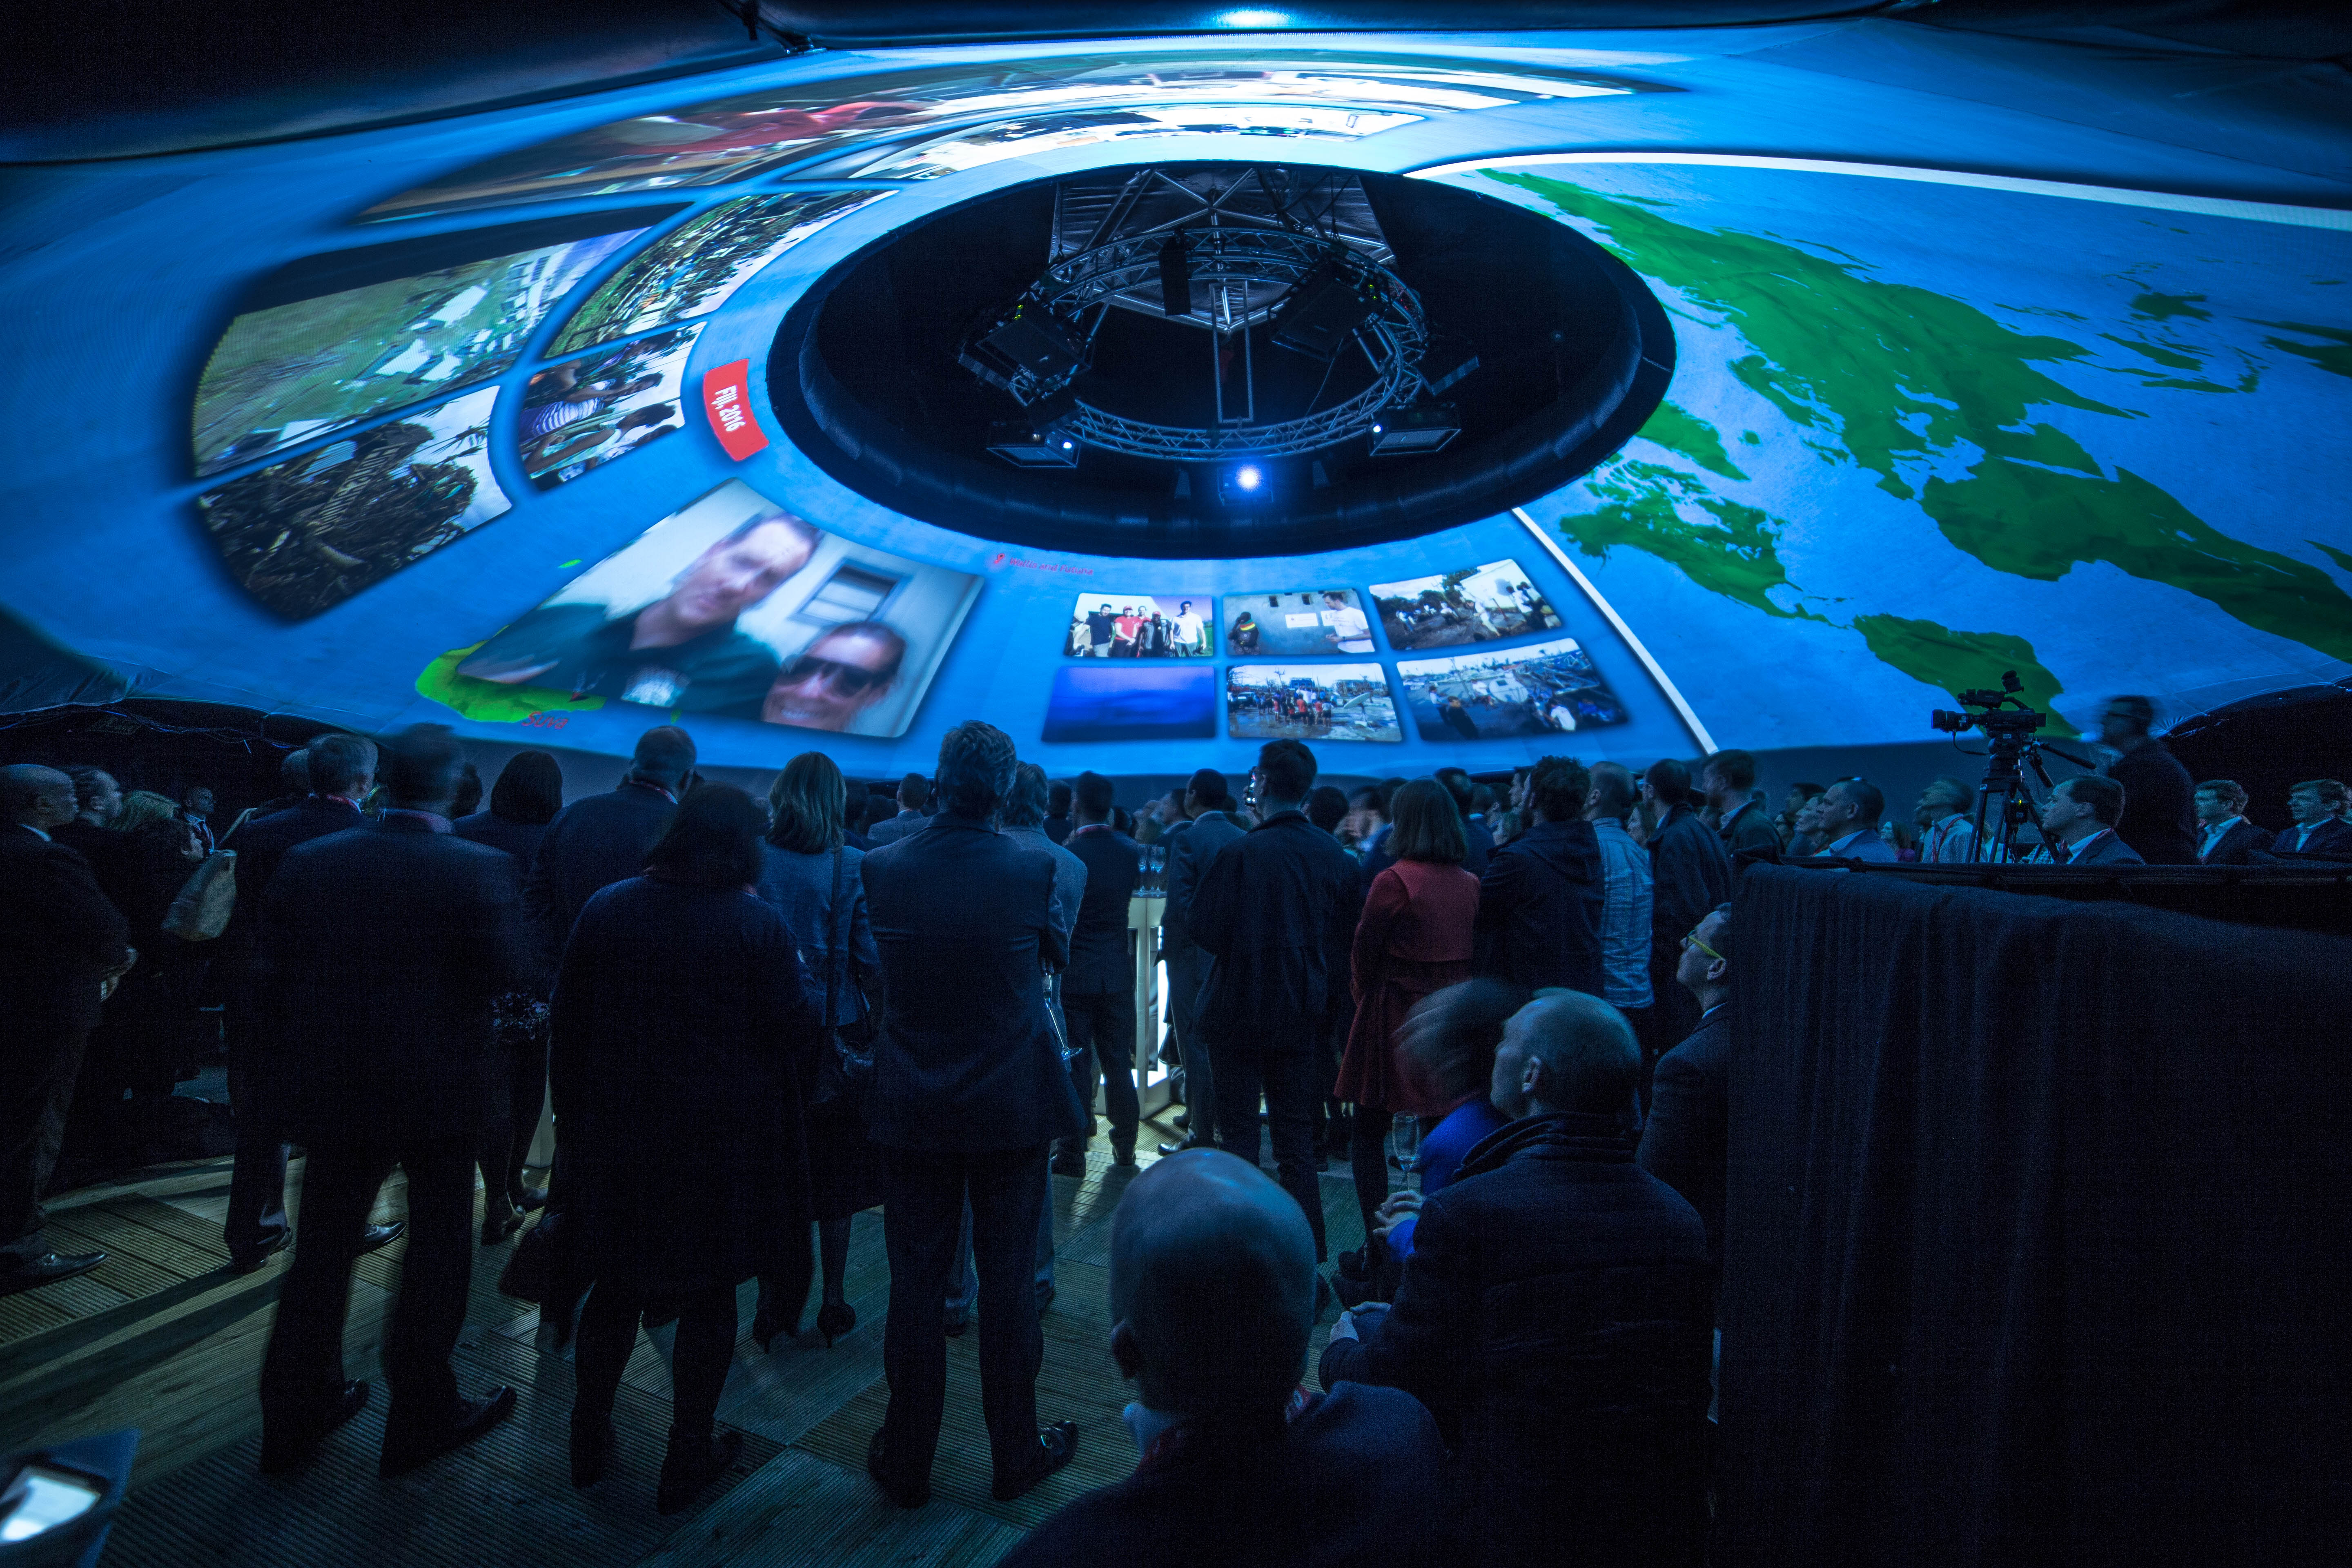 An Immersive Dome Experience for Vodafone Foundation